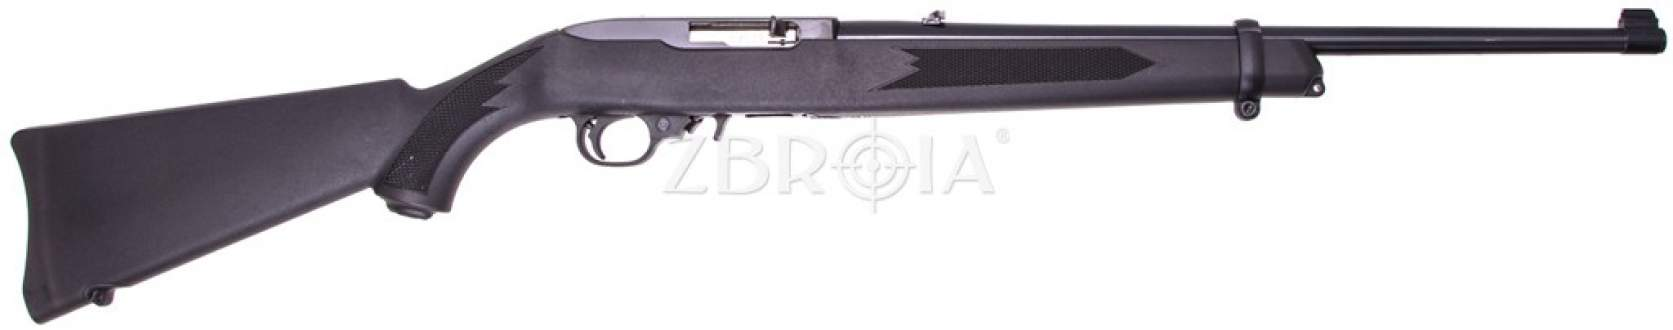 Карабин Ruger 10/22 Carbine Synthetic кал. 22 LR